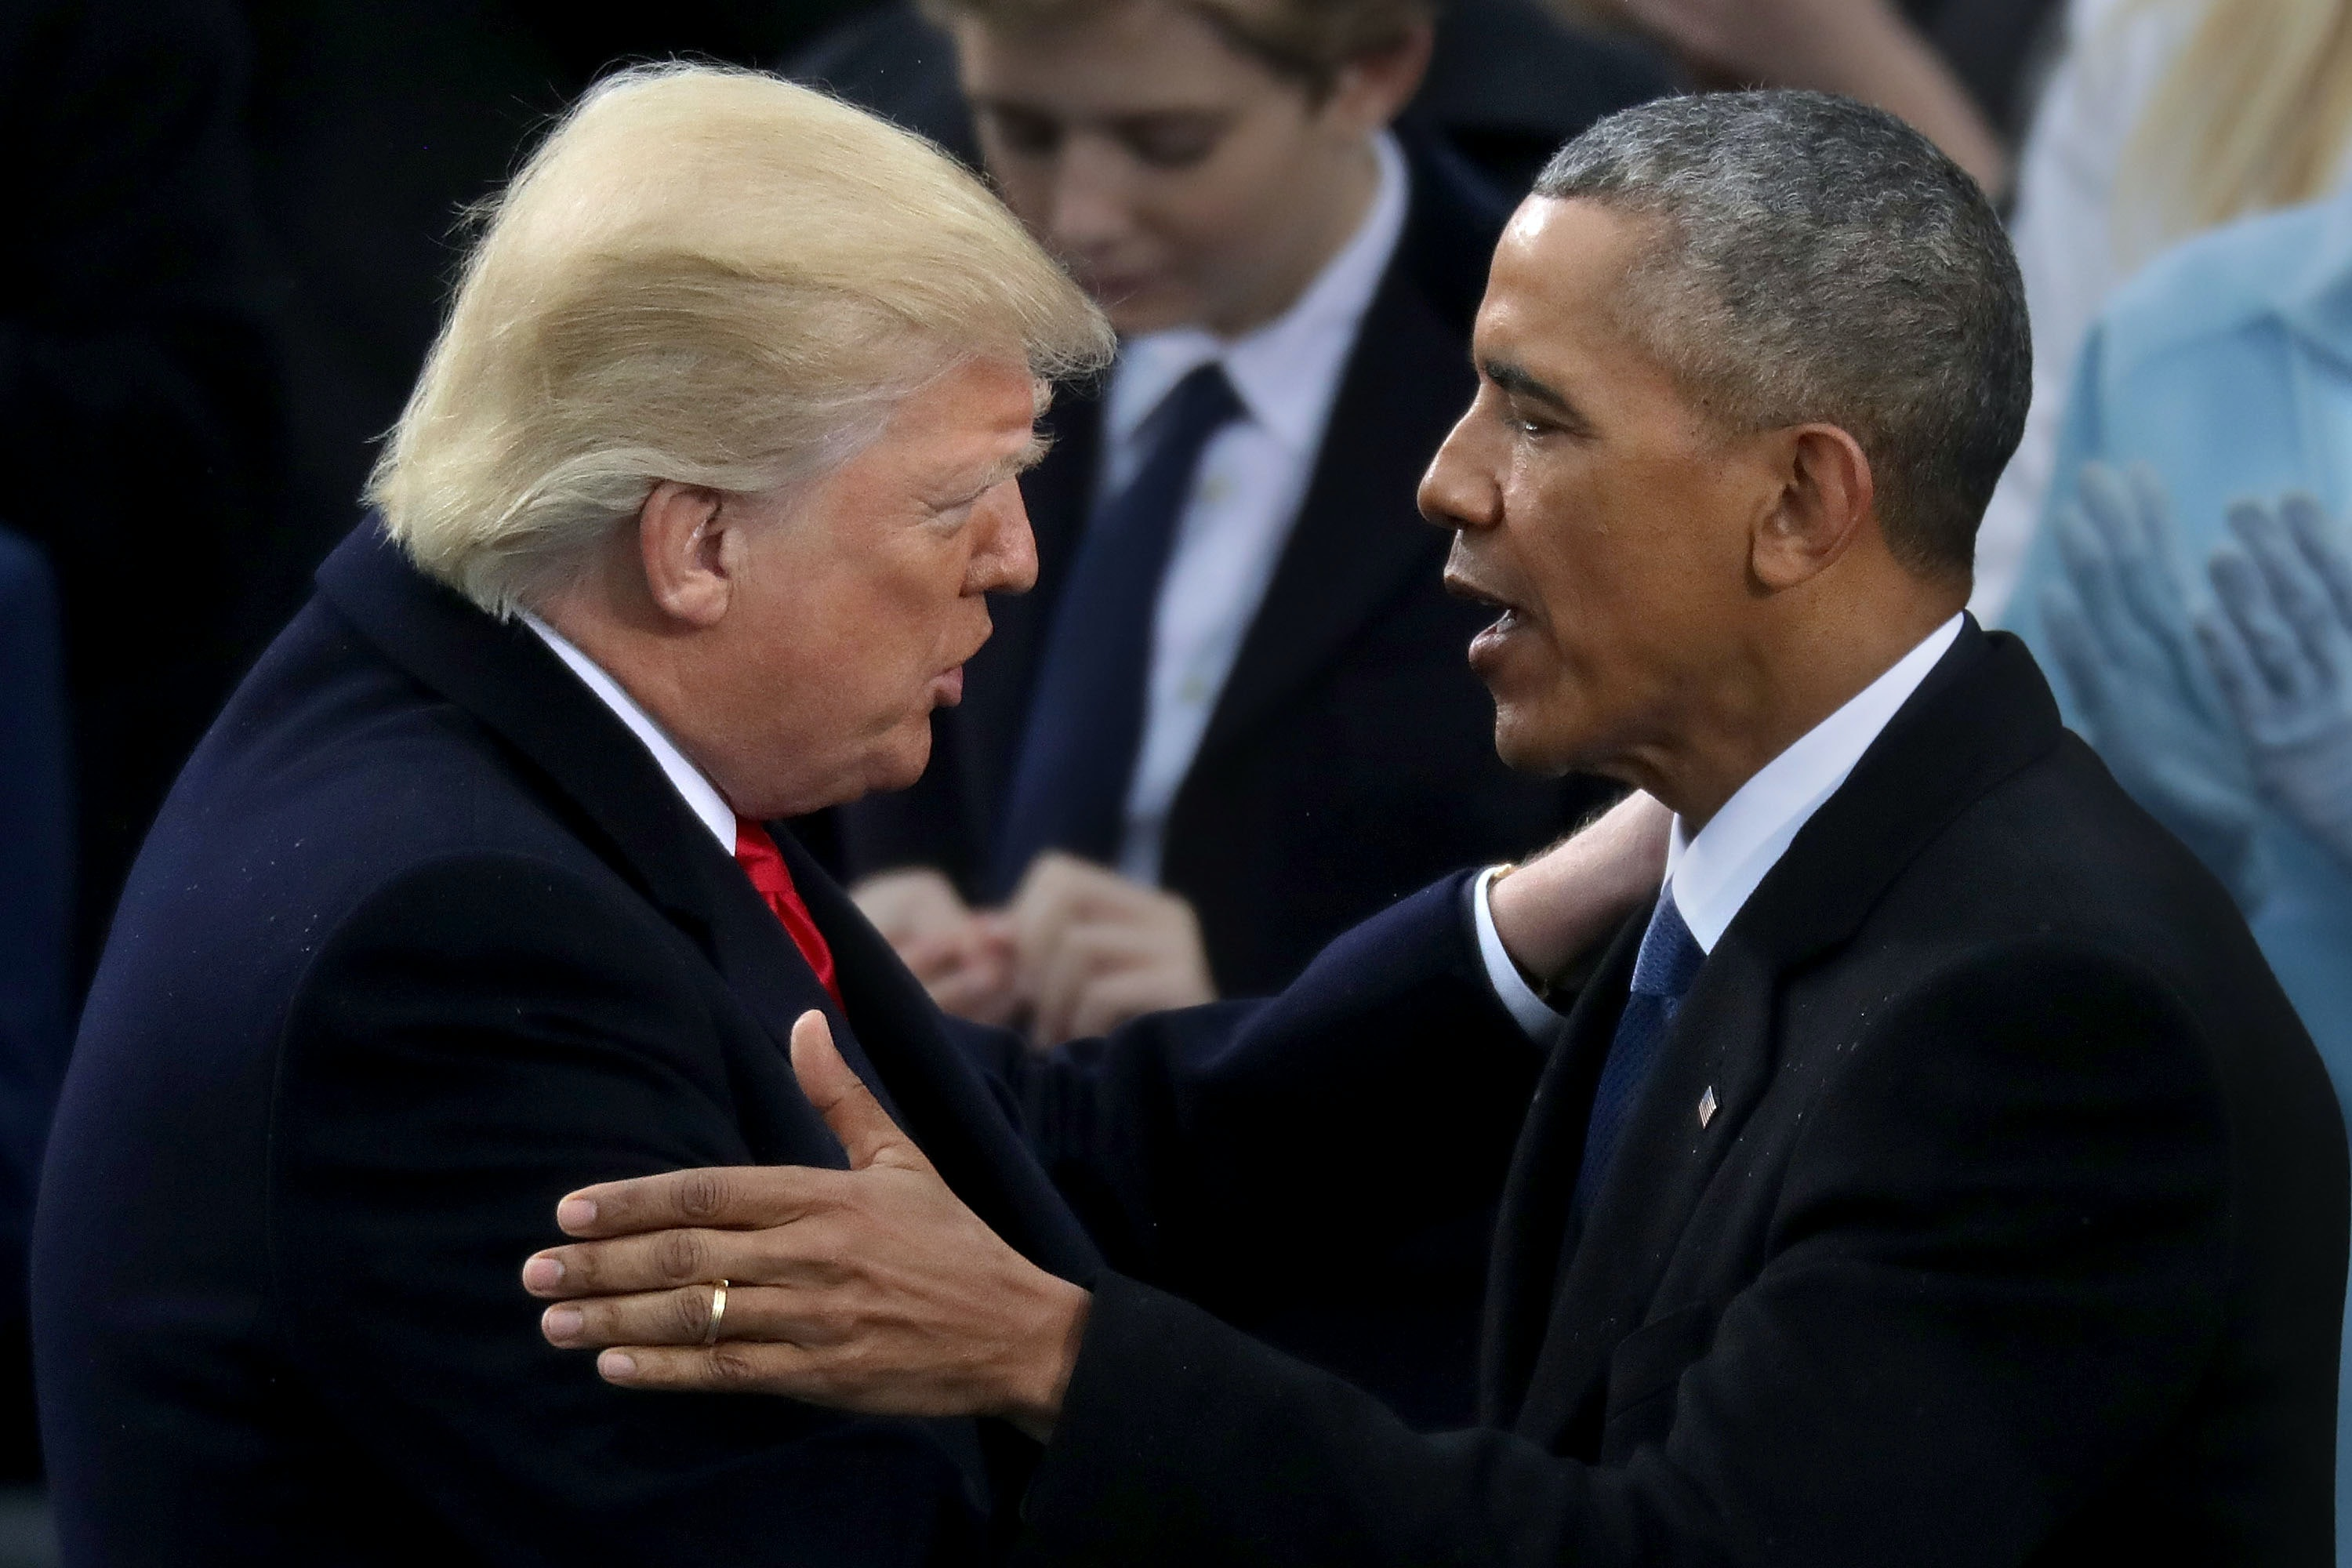 Obama Says The Darndest Things To Trump In Latest 'Bad Lip Reading'